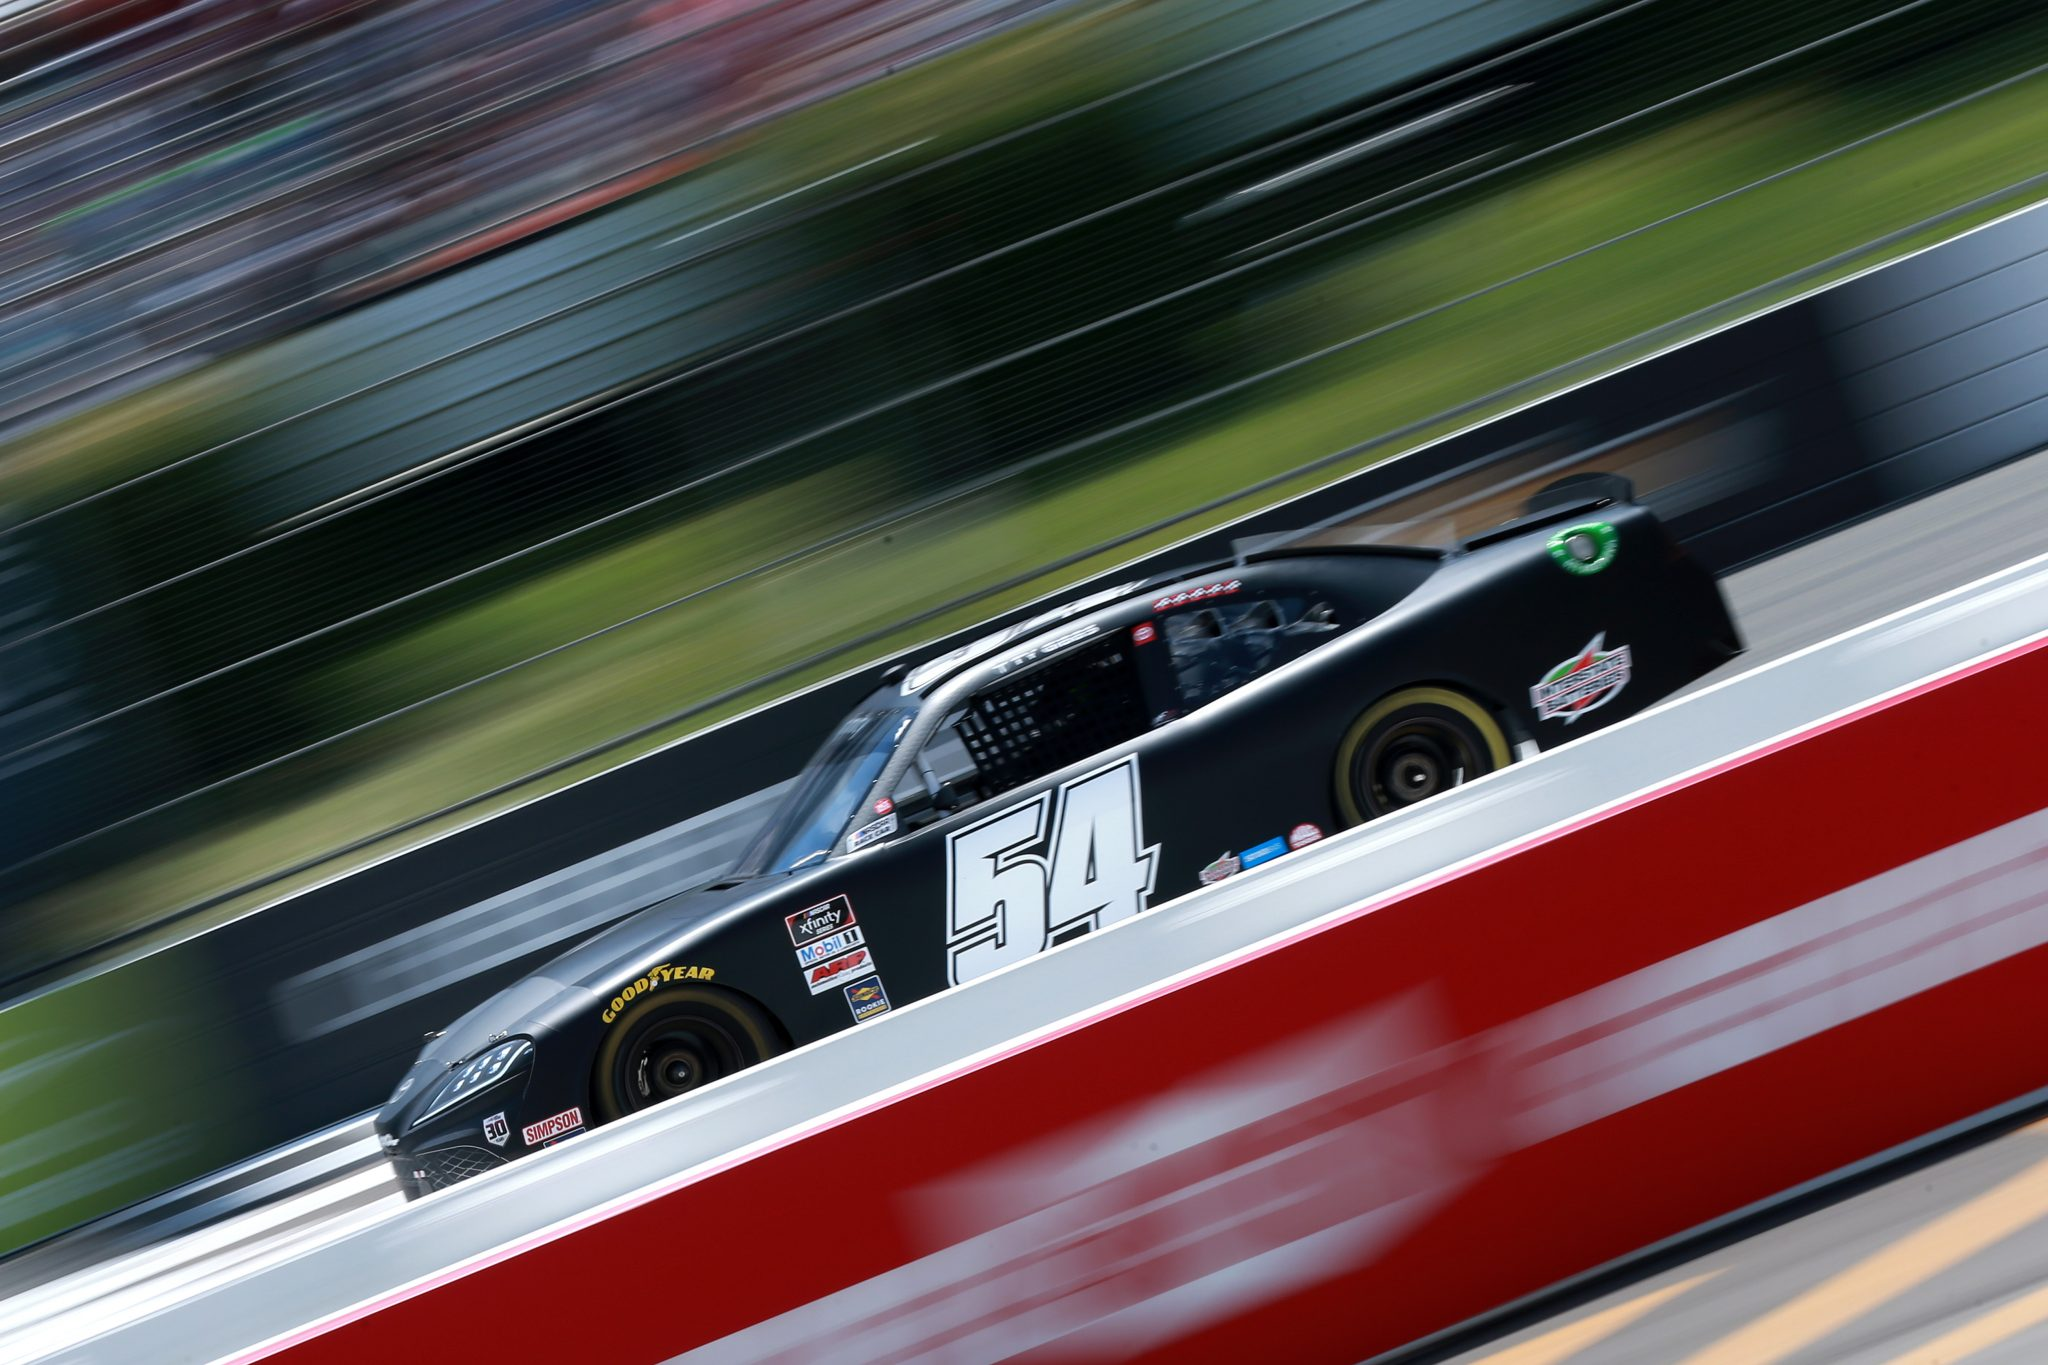 LONG POND, PENNSYLVANIA - JUNE 27: Ty Gibbs, driver of the #54 Joe Gibbs Racing Toyota, drives during the NASCAR Xfinity Series Pocono Green 225 Recycled by J.P. Mascaro & Sons at Pocono Raceway on June 27, 2021 in Long Pond, Pennsylvania. (Photo by Sean Gardner/Getty Images) | Getty Images